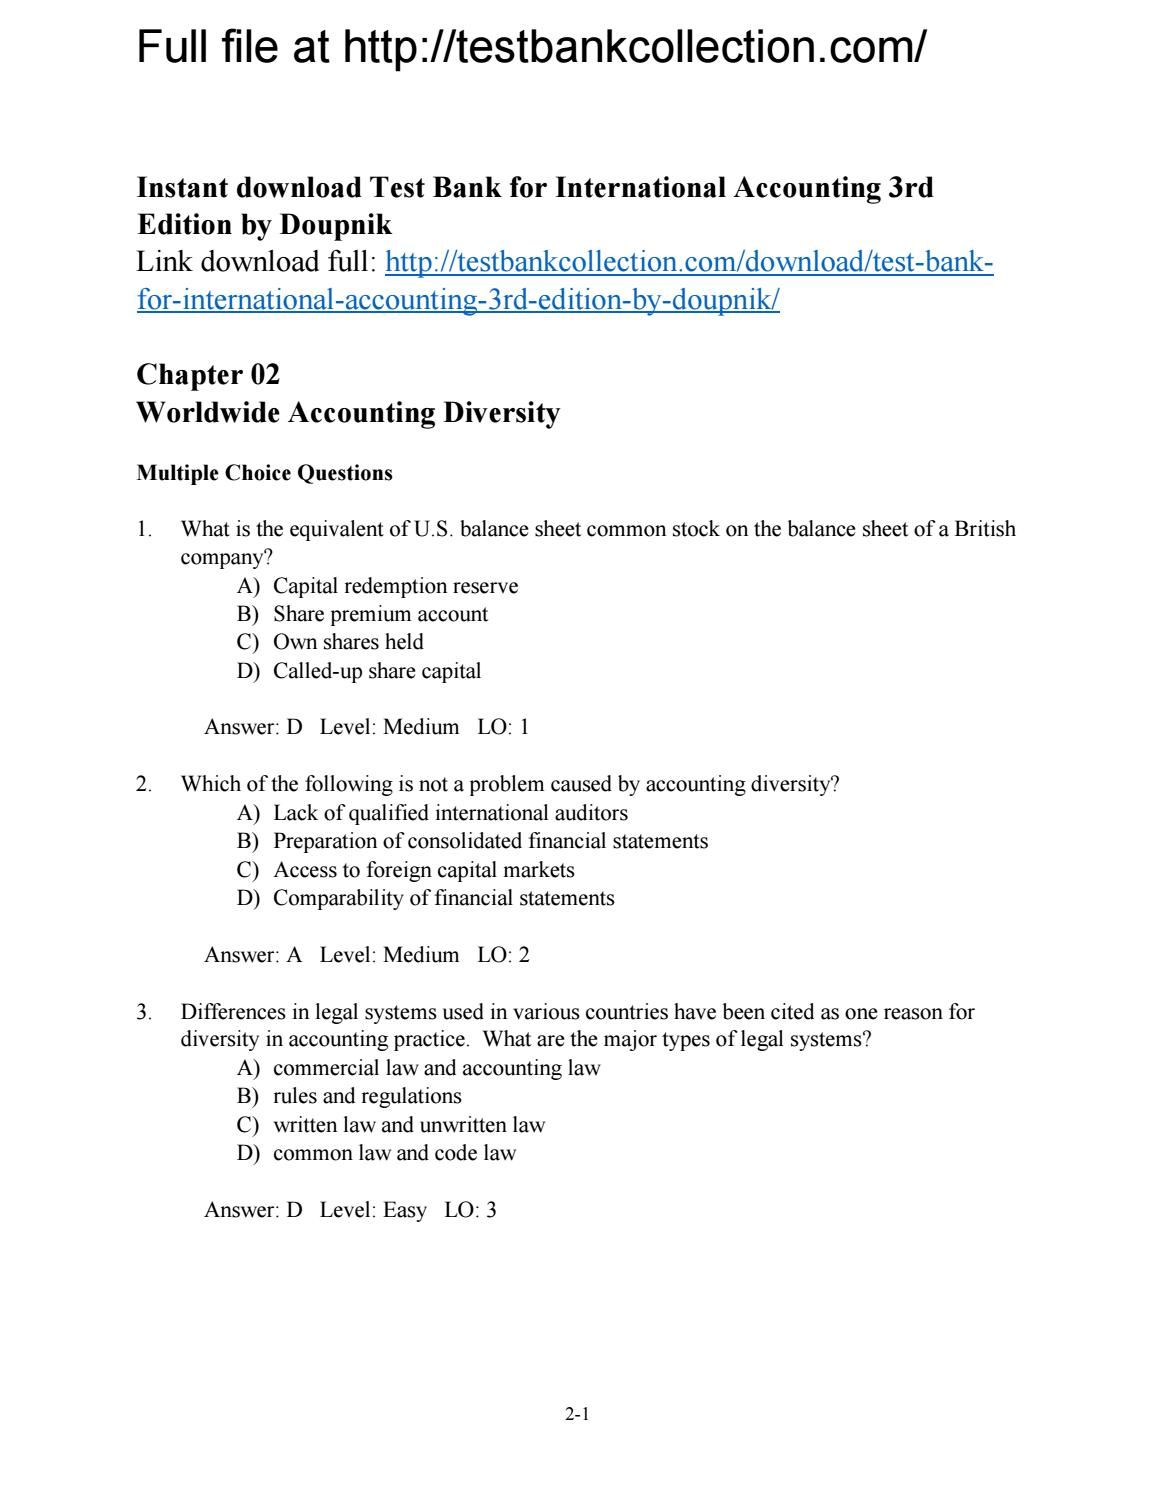 Test bank for international accounting 3rd edition by doupnik | Test